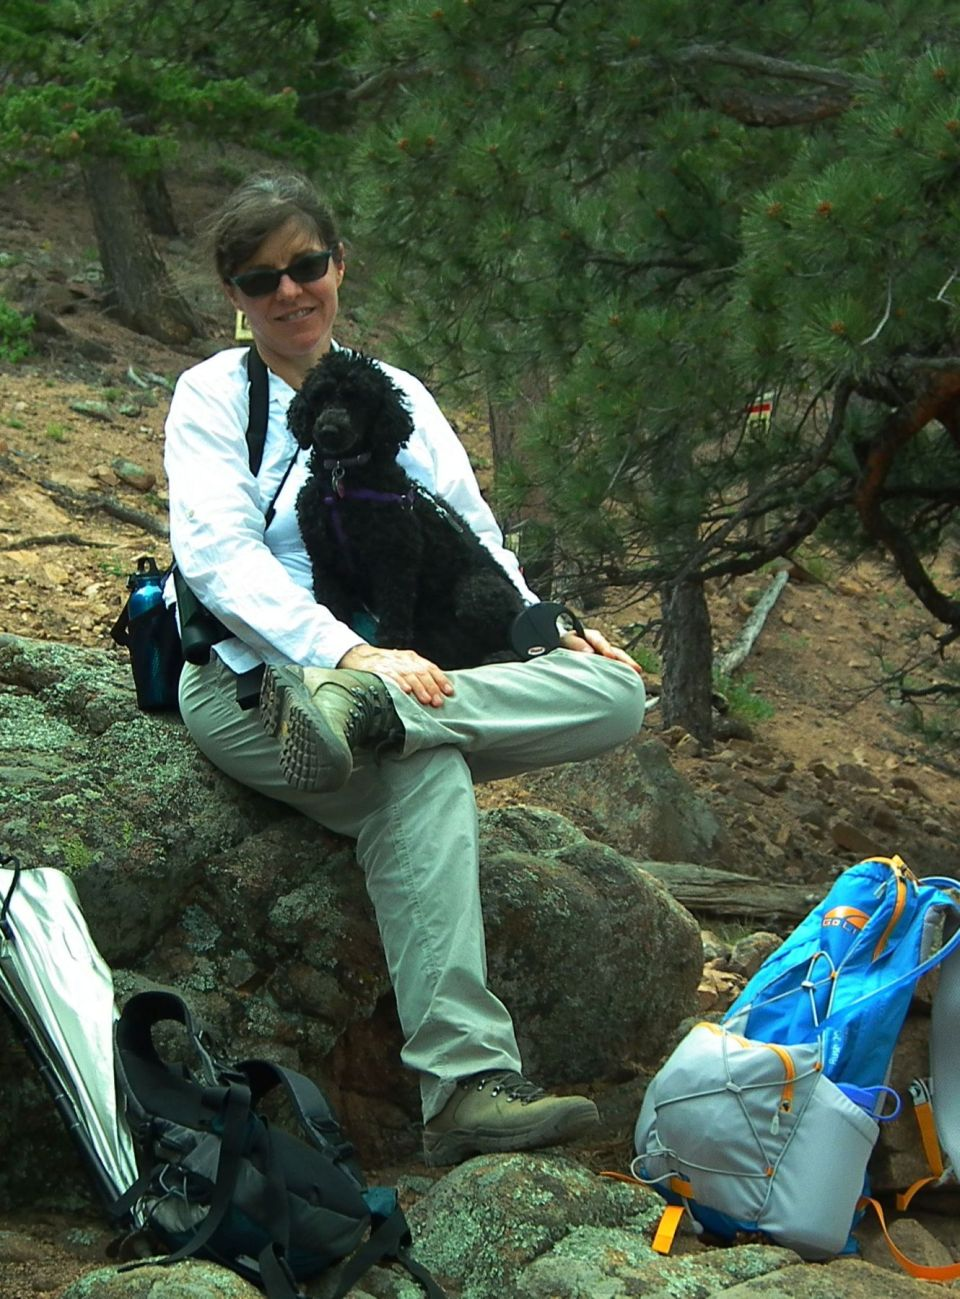 Female hiker and miniature poodle taking a break. Photo by Kurt Fristrup